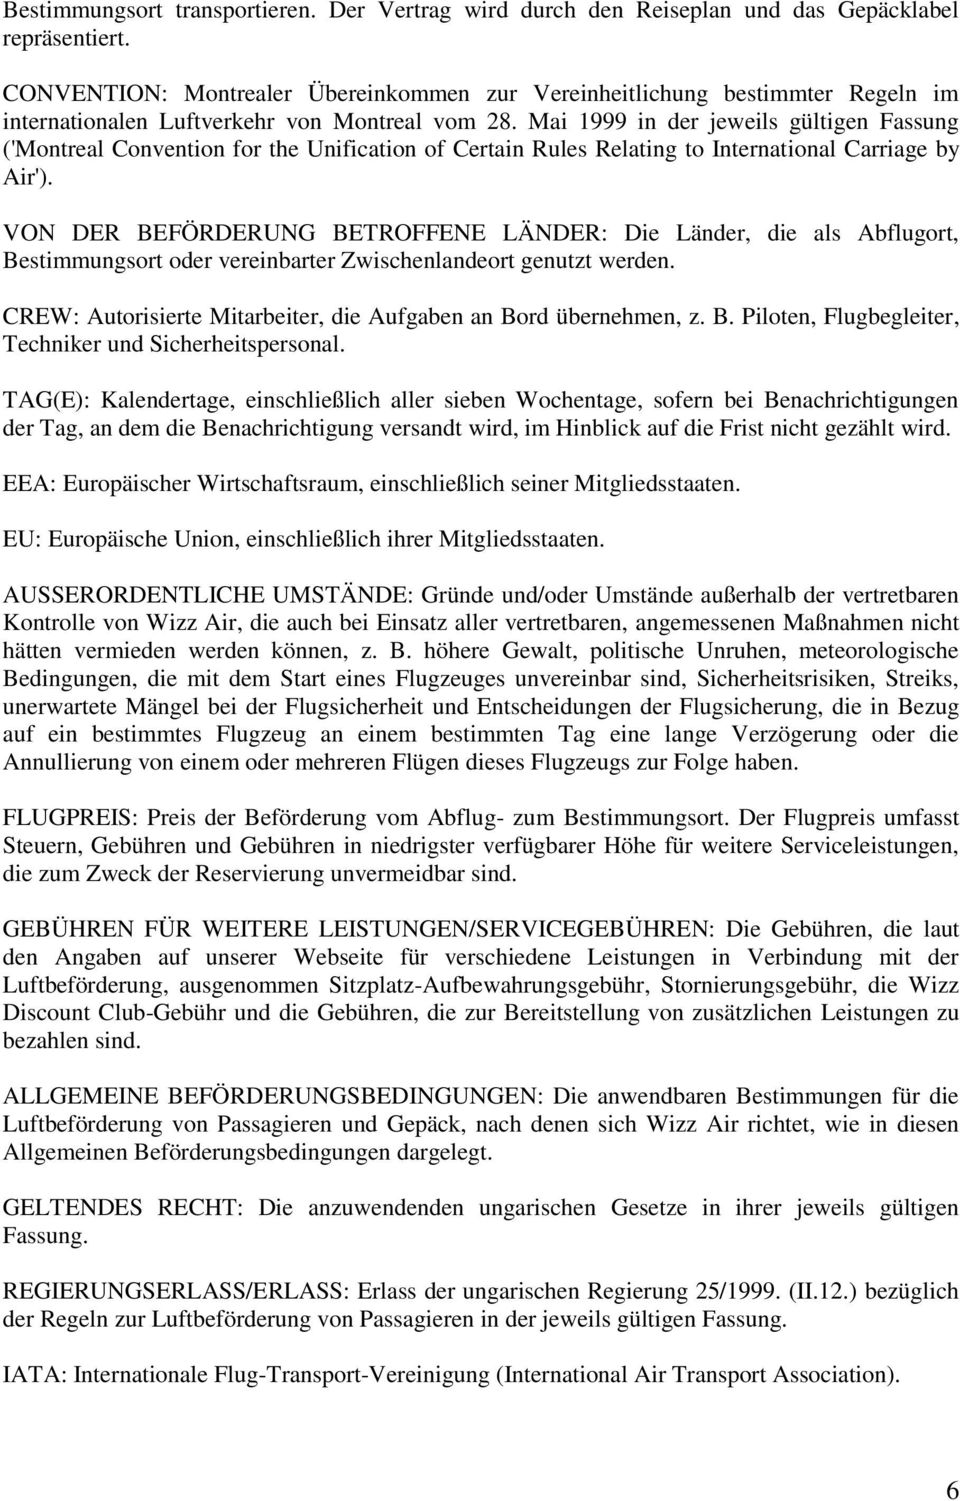 Mai 1999 in der jeweils gültigen Fassung ('Montreal Convention for the Unification of Certain Rules Relating to International Carriage by Air').